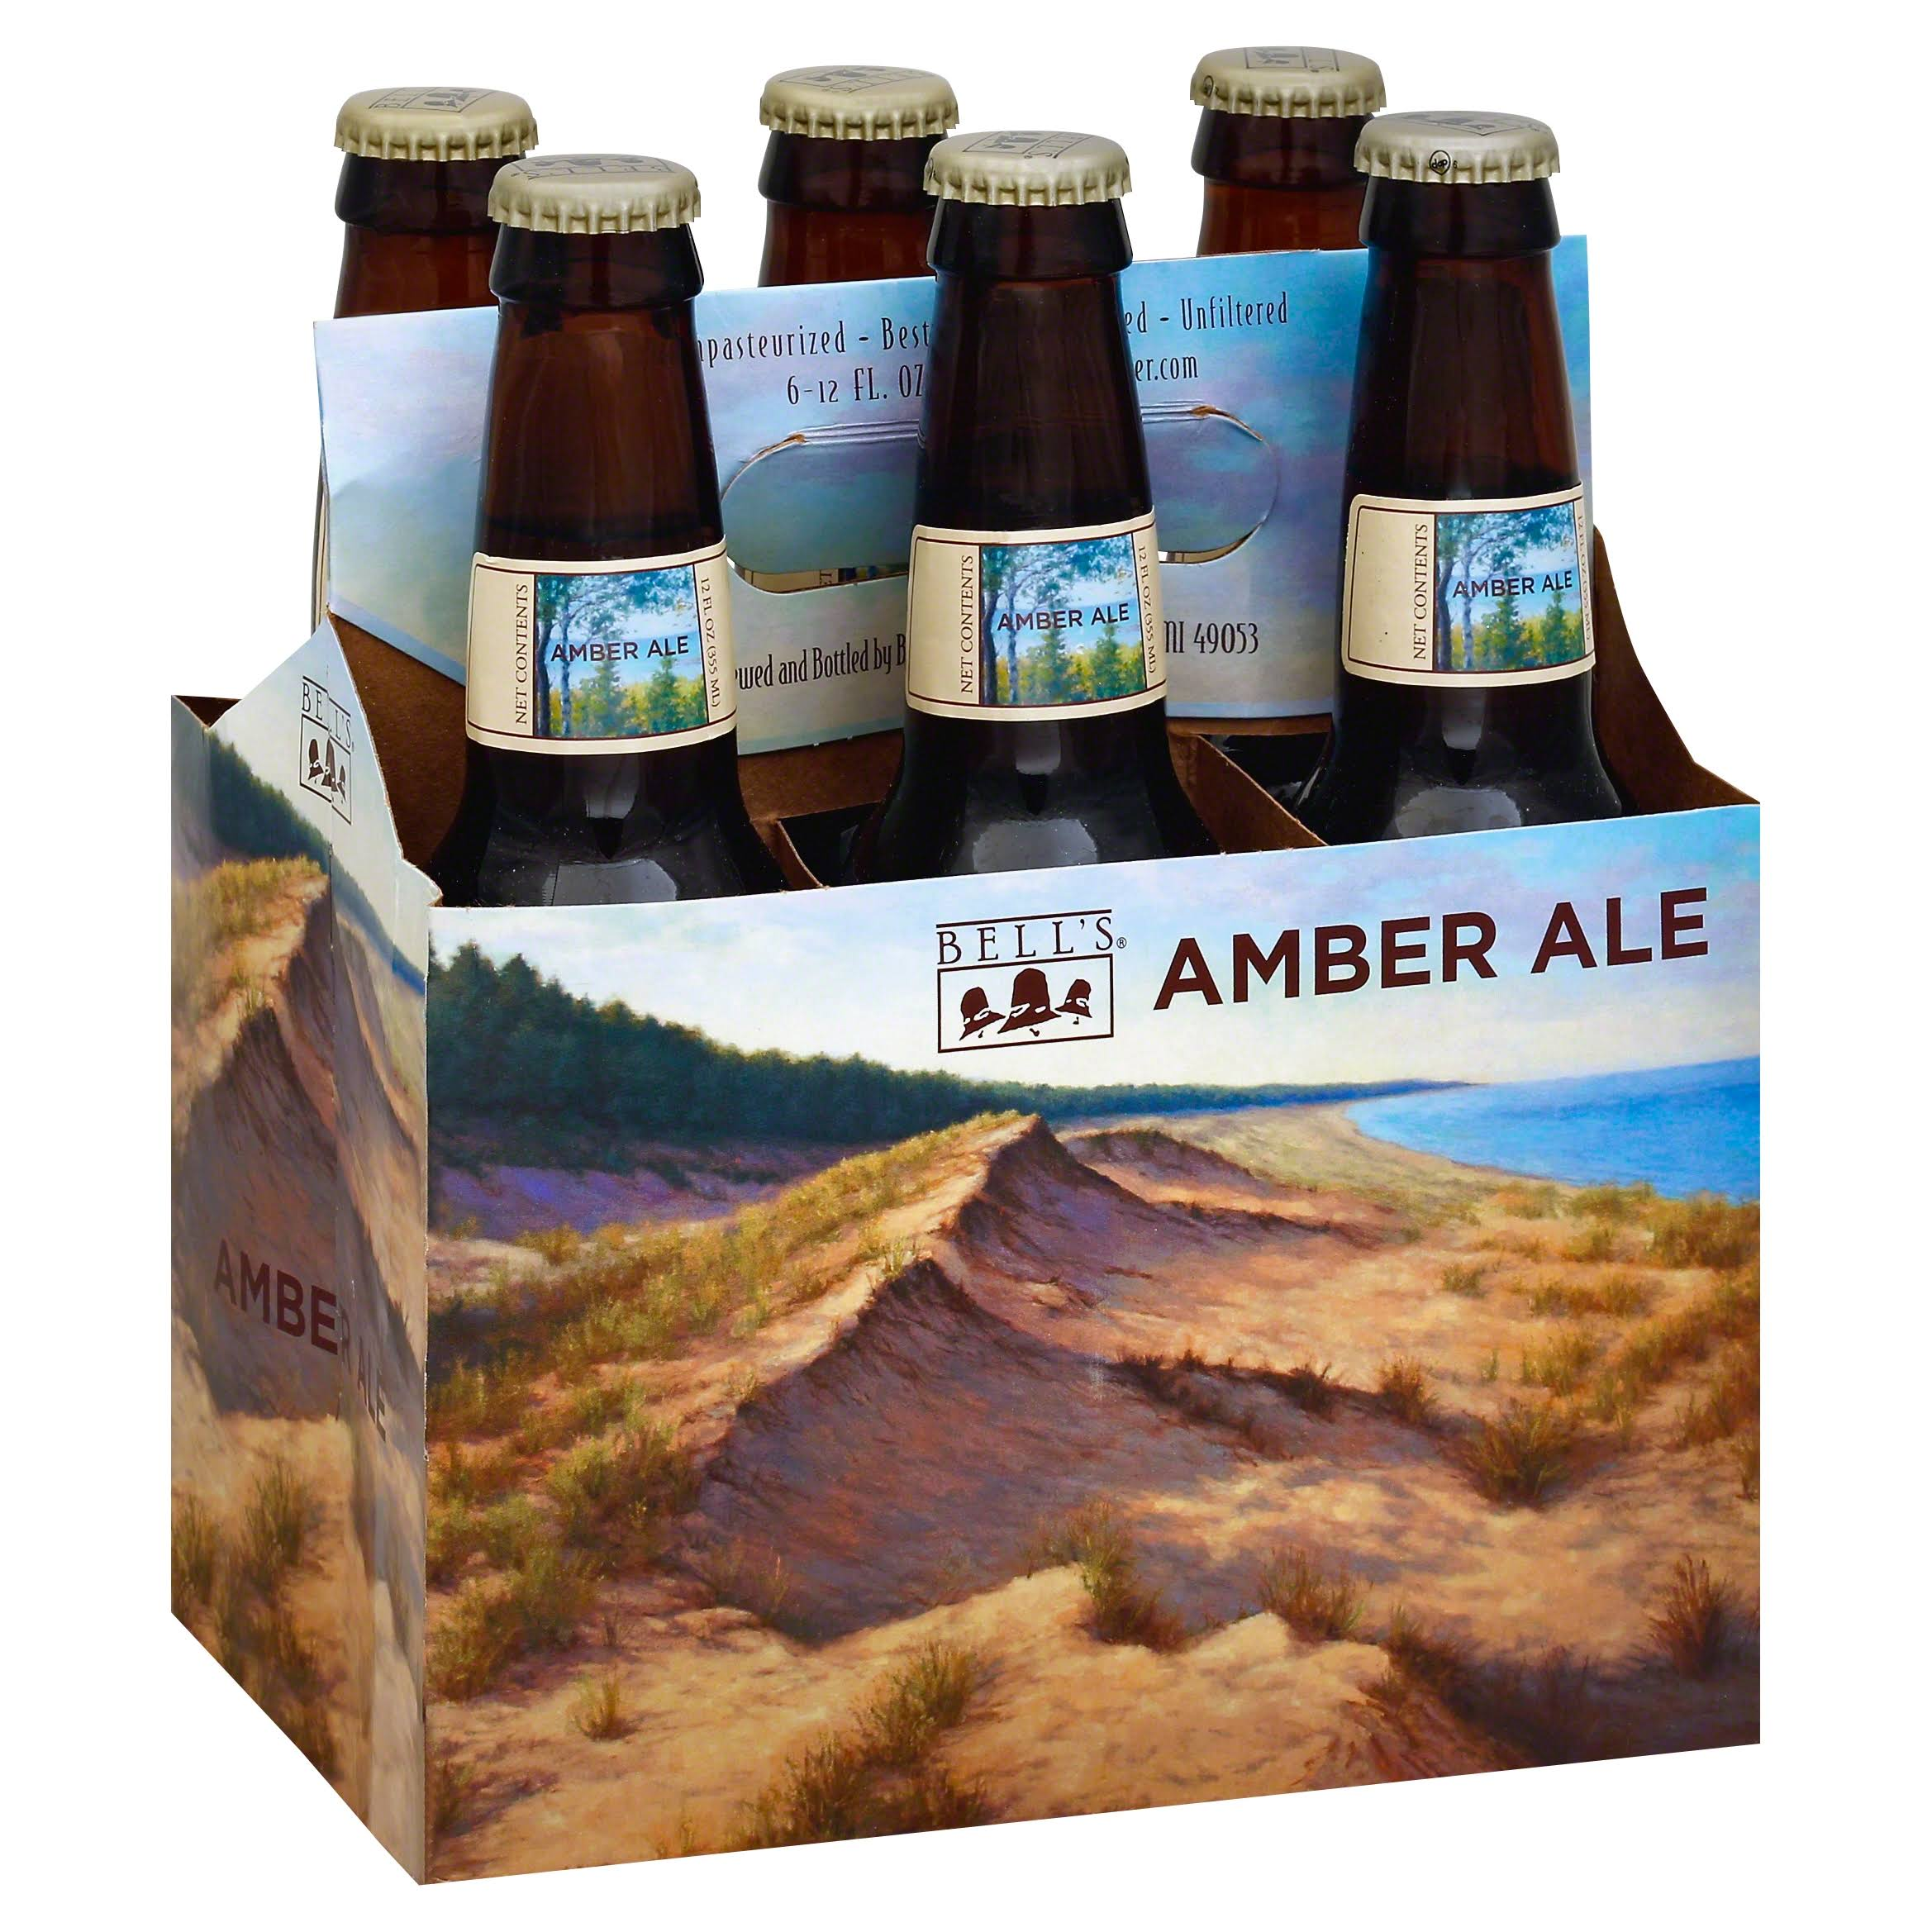 Bells Beer, Amber Ale - 6 pack, 12 fl oz bottles